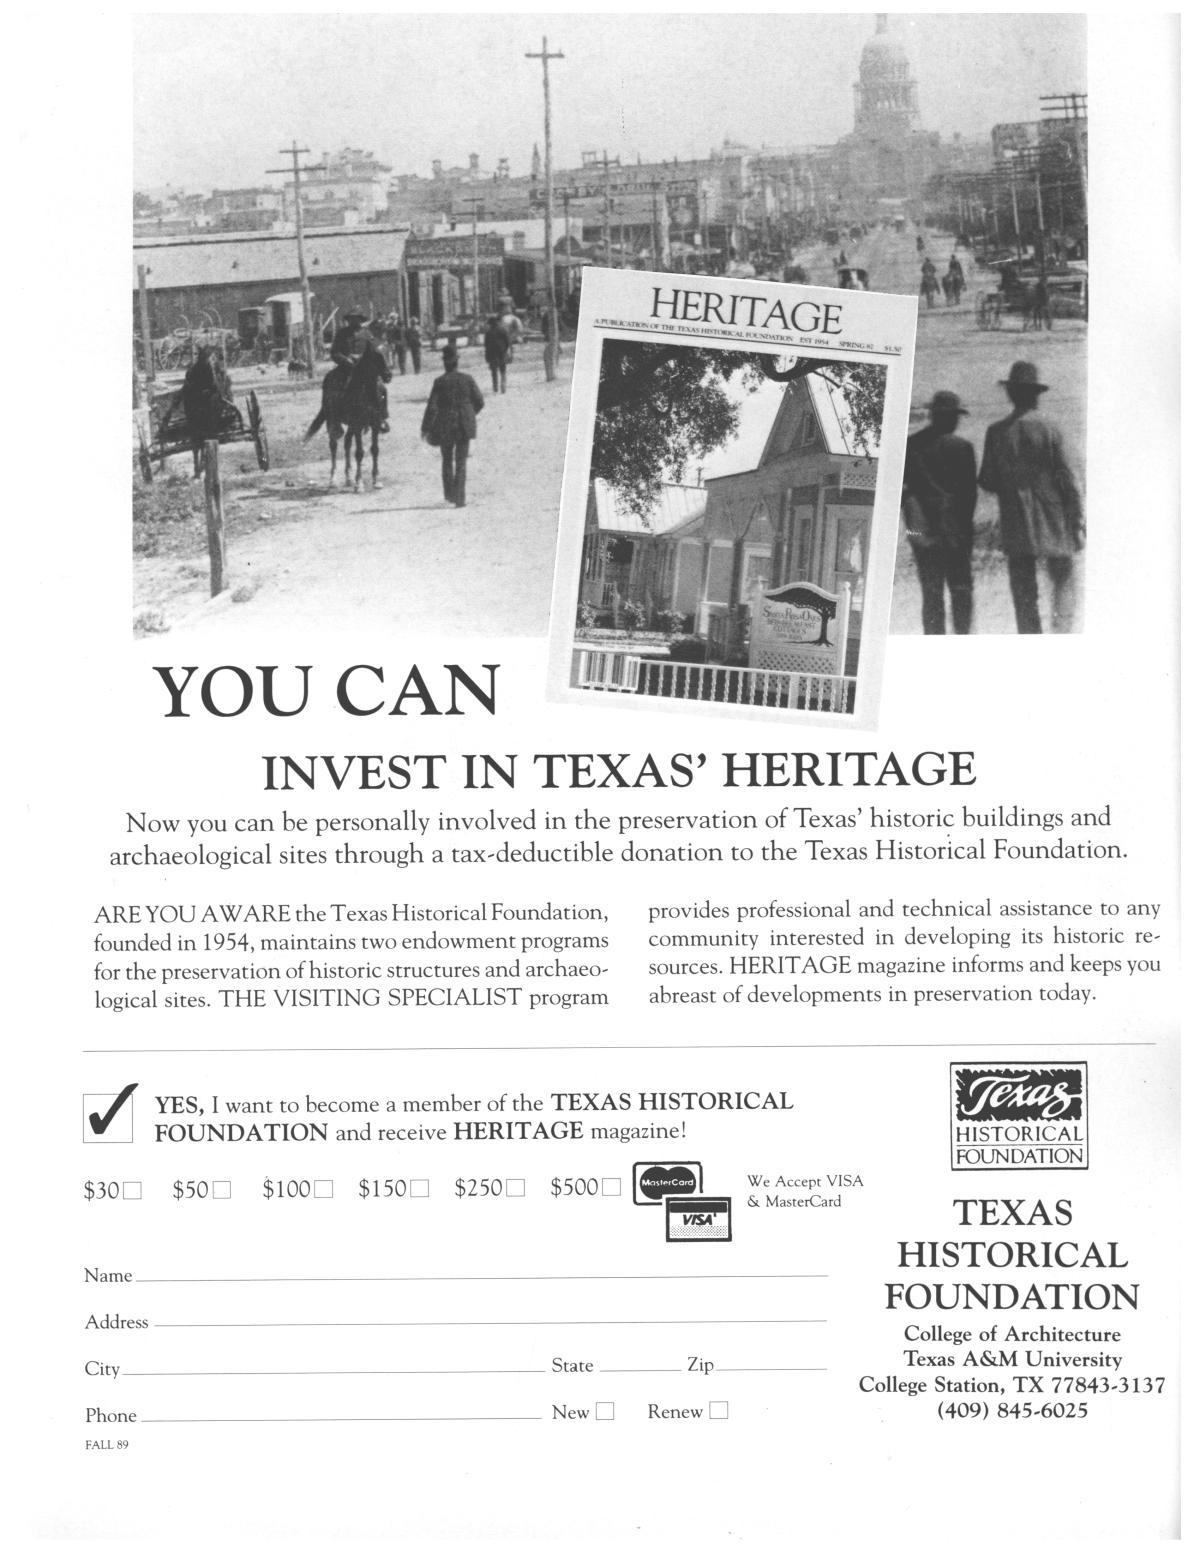 Heritage, Volume 7, Number 4, Fall 1989                                                                                                      2